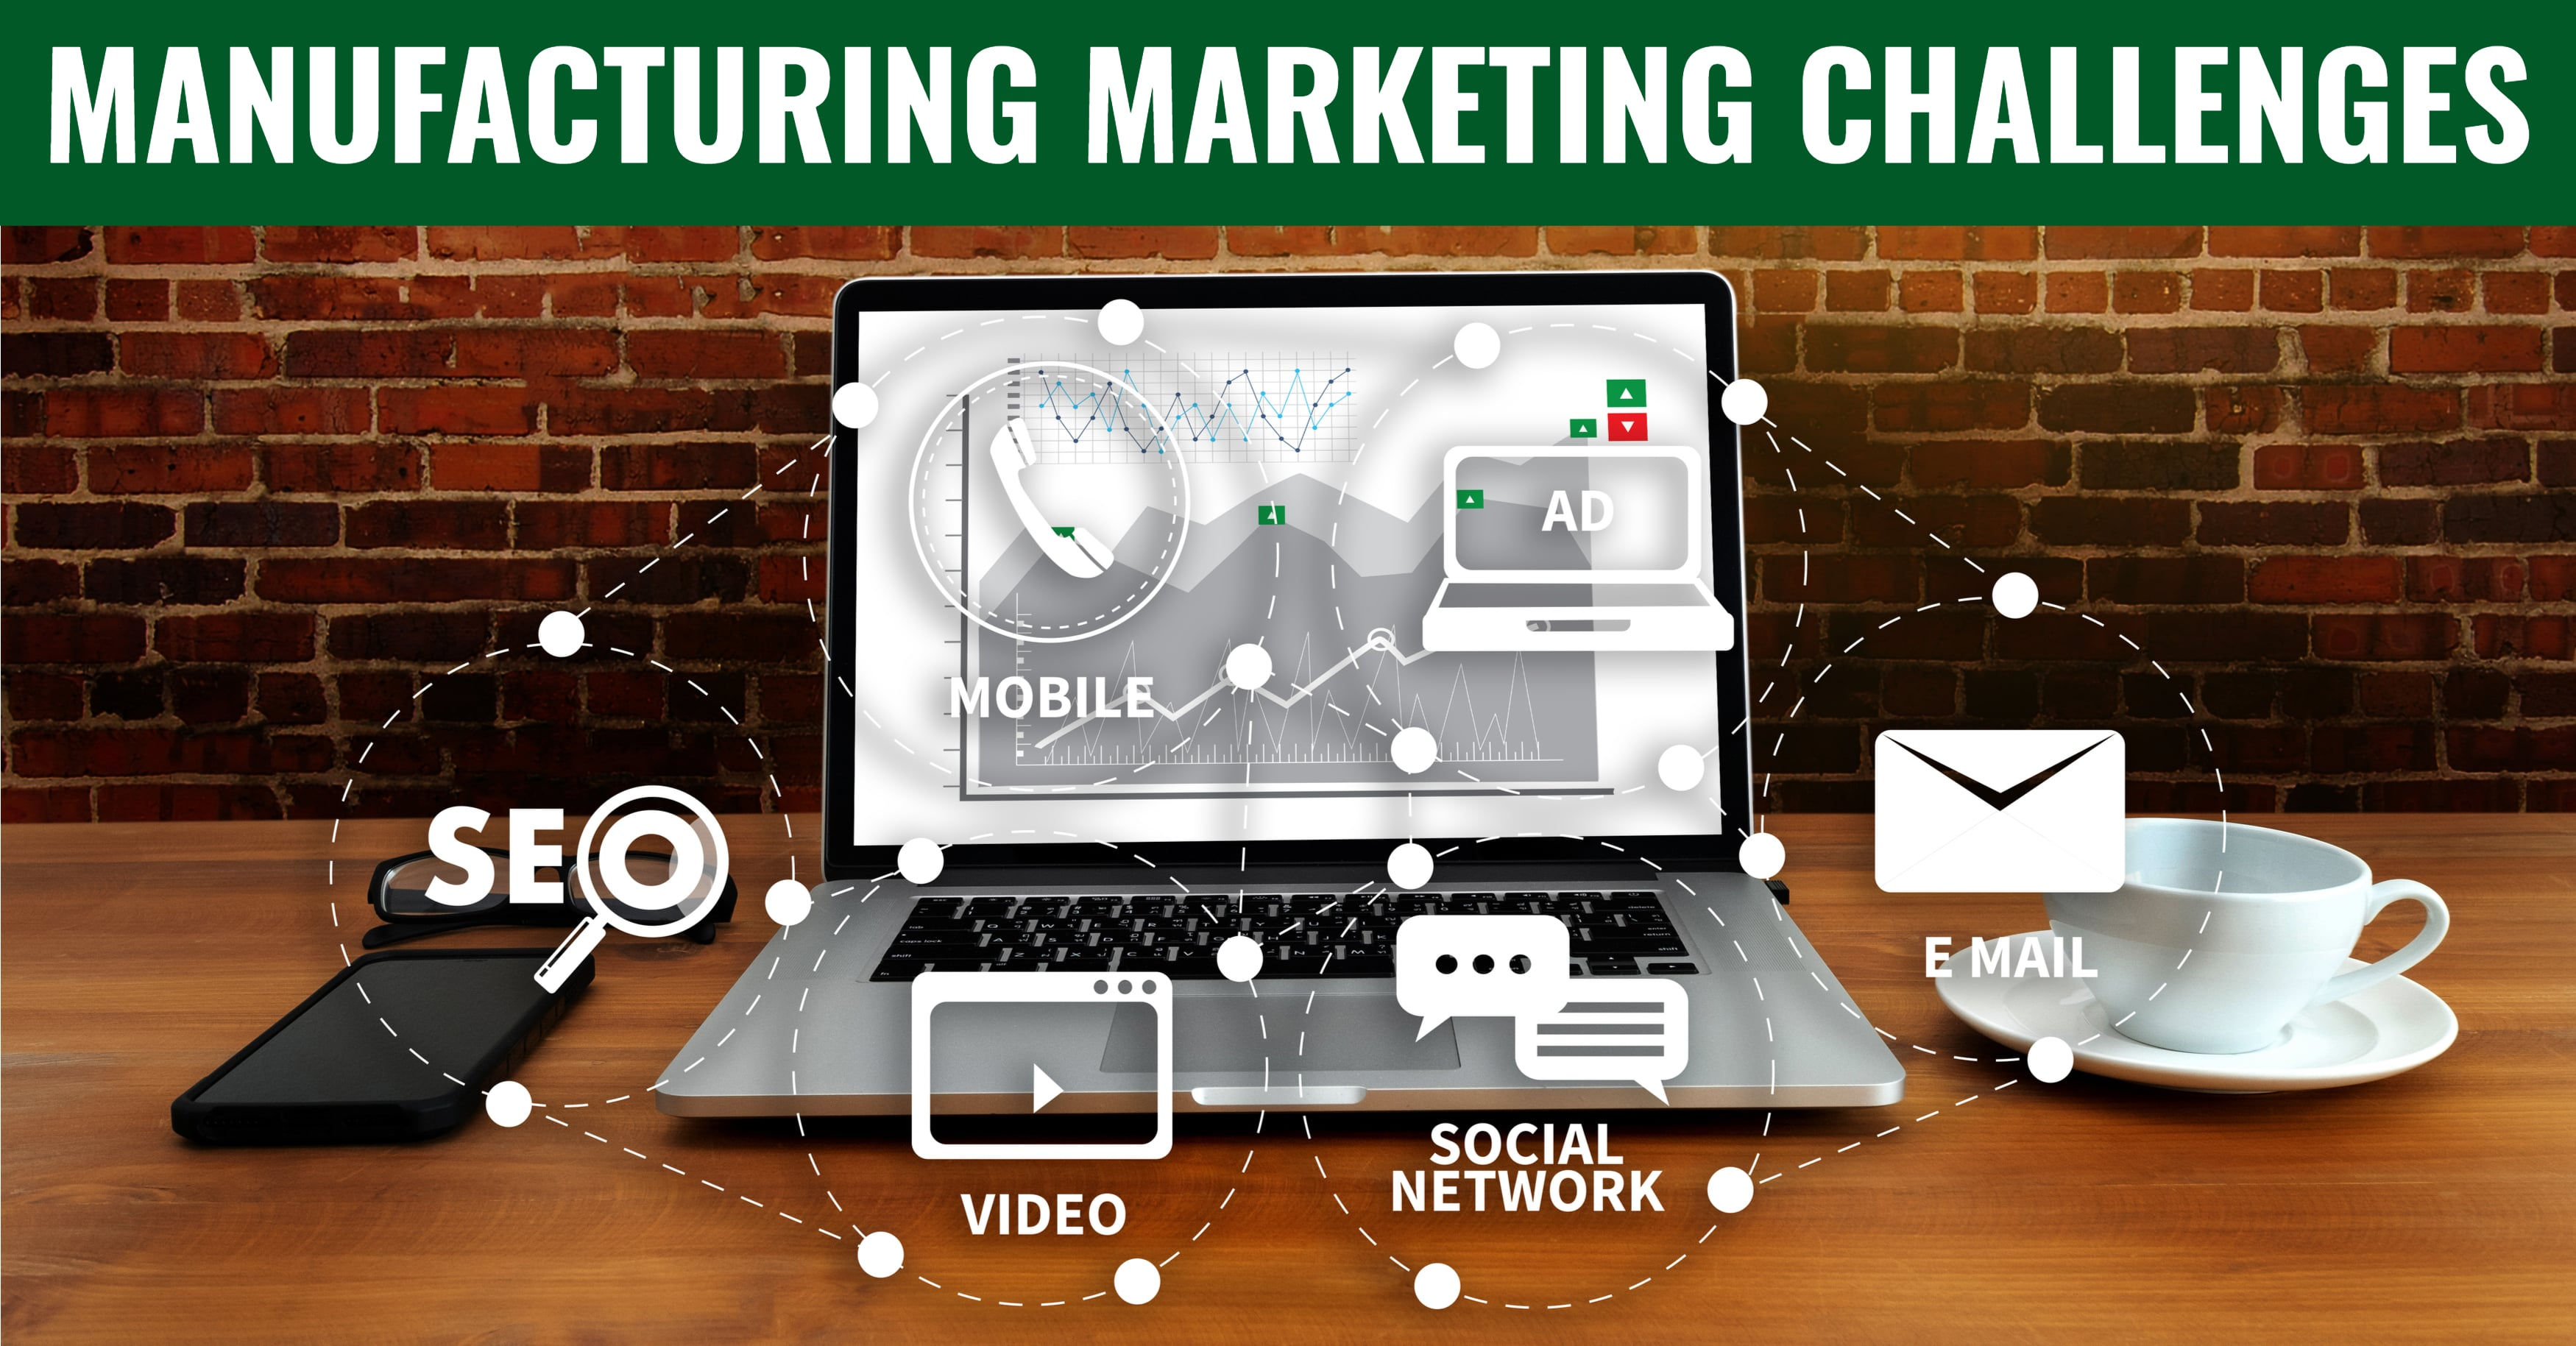 3 Marketing Challenges for Manufacturers